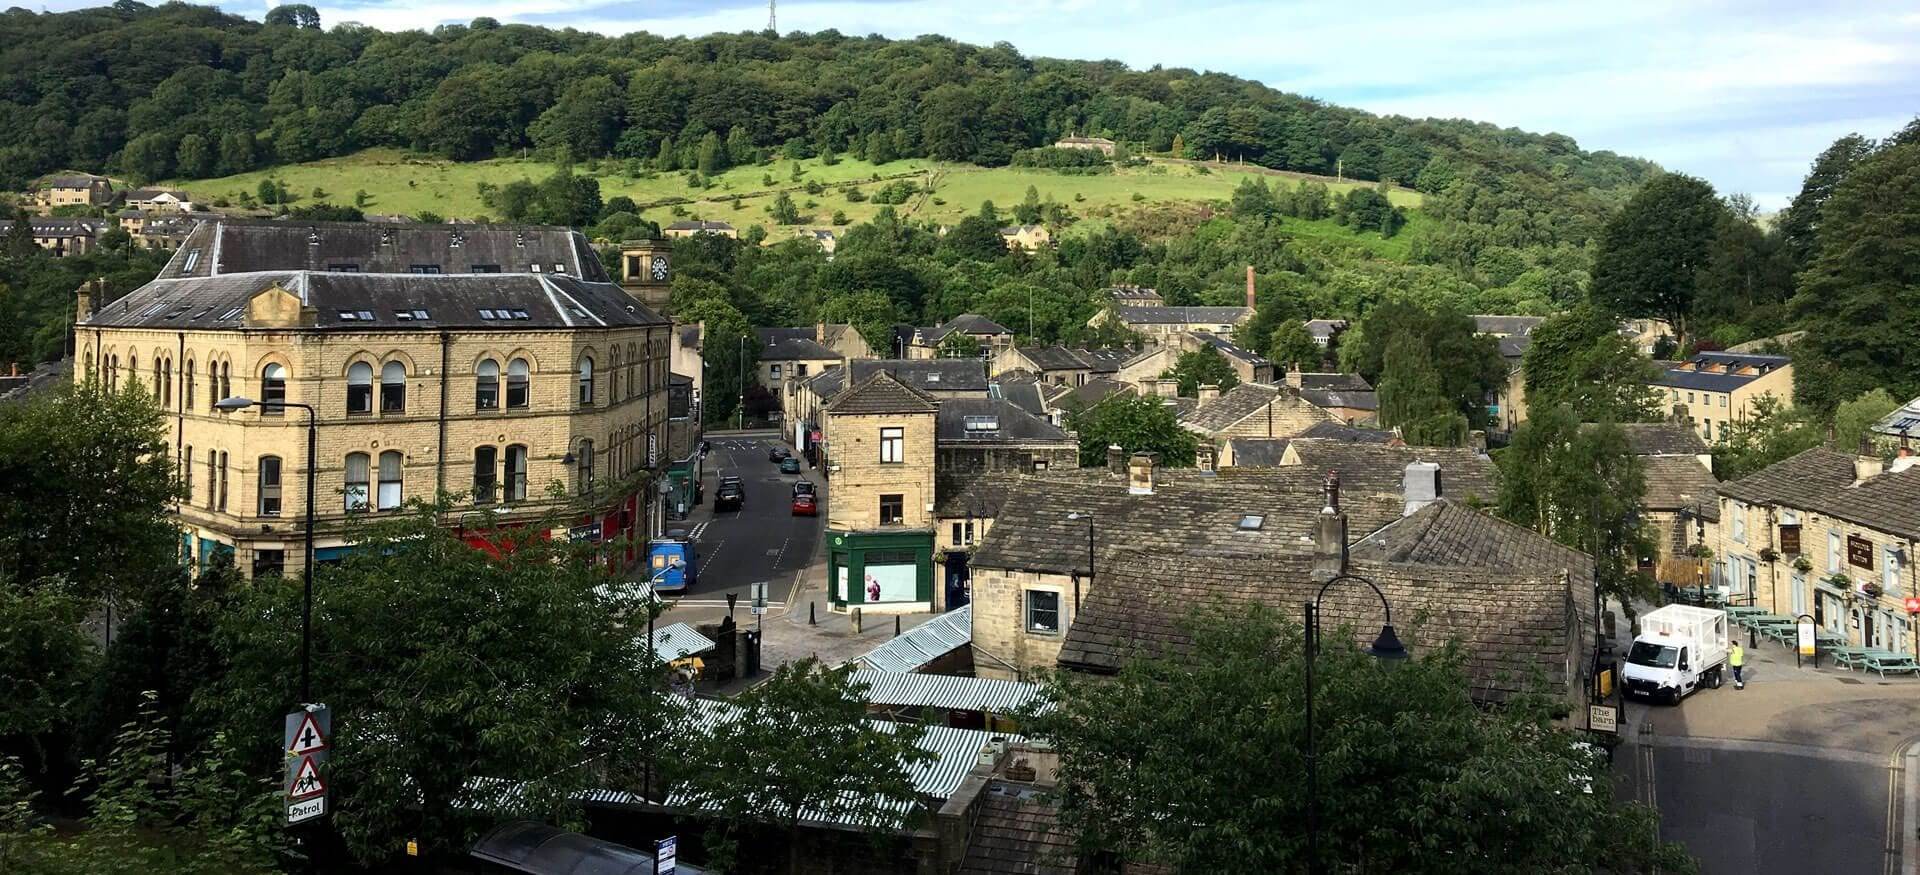 hebden bridge close to the pennine way